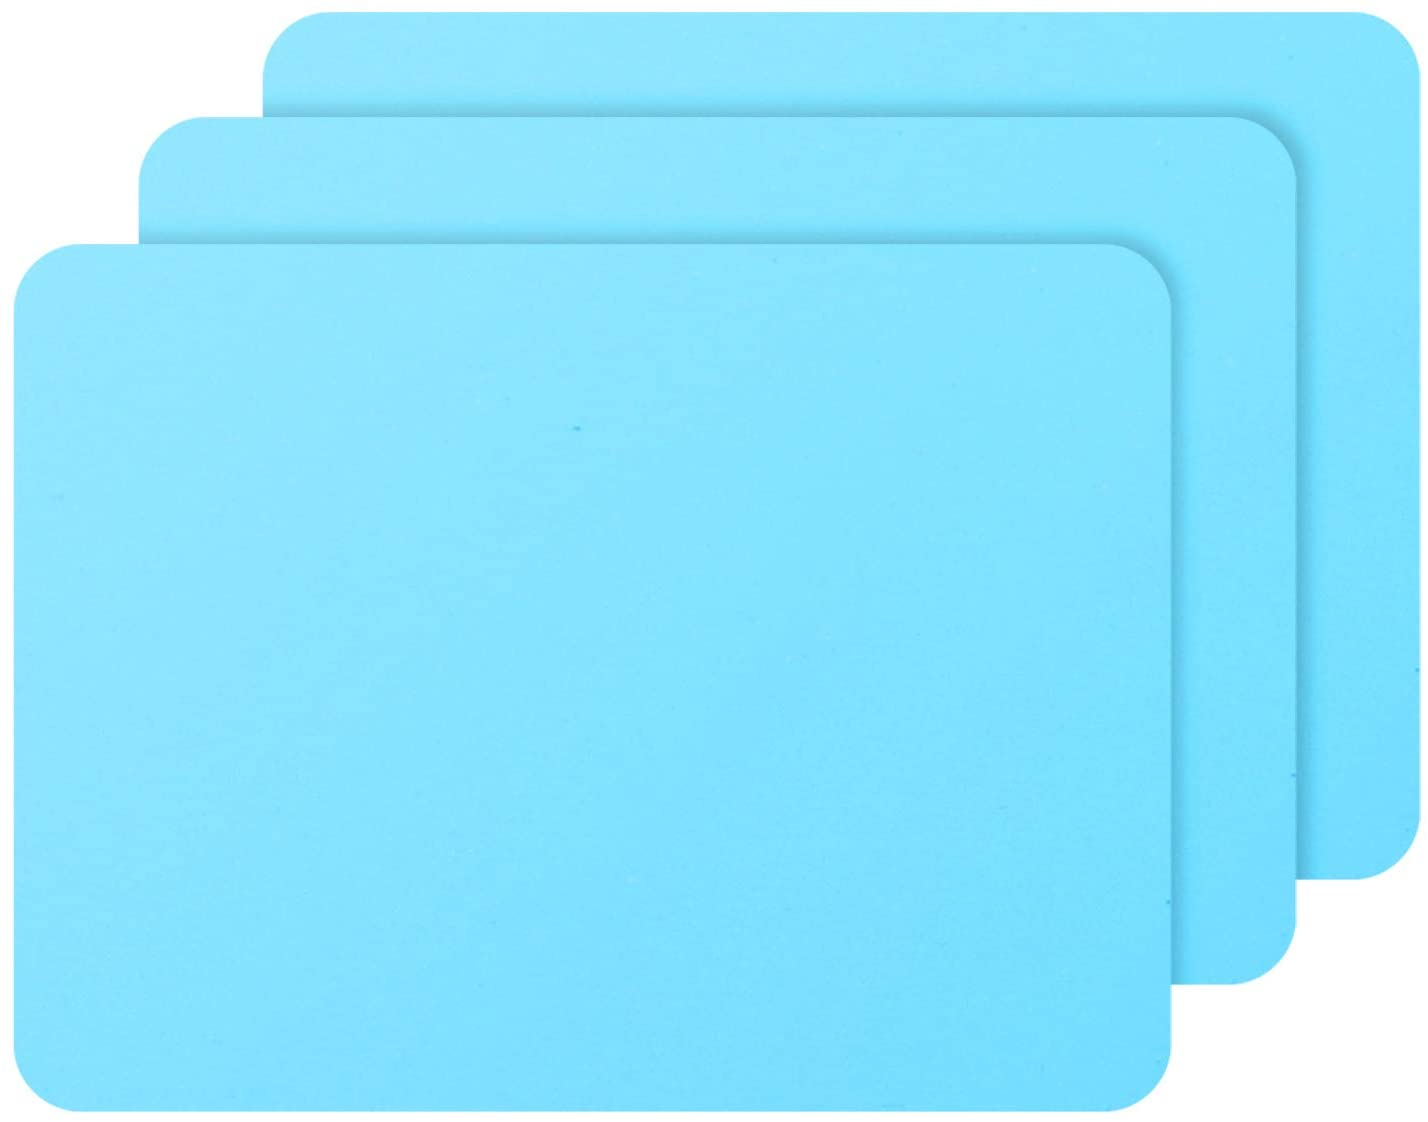 3 PCS Medium Silicone Sheets, Gartful Silicone Crafts Mat for Epoxy Resin Jewelry Casting Molds, Multipurpose Countertop Protector Pad Placemat, Nonslip Non-stick Heat Resistant, Blue (15.7 x 11.8 inches)